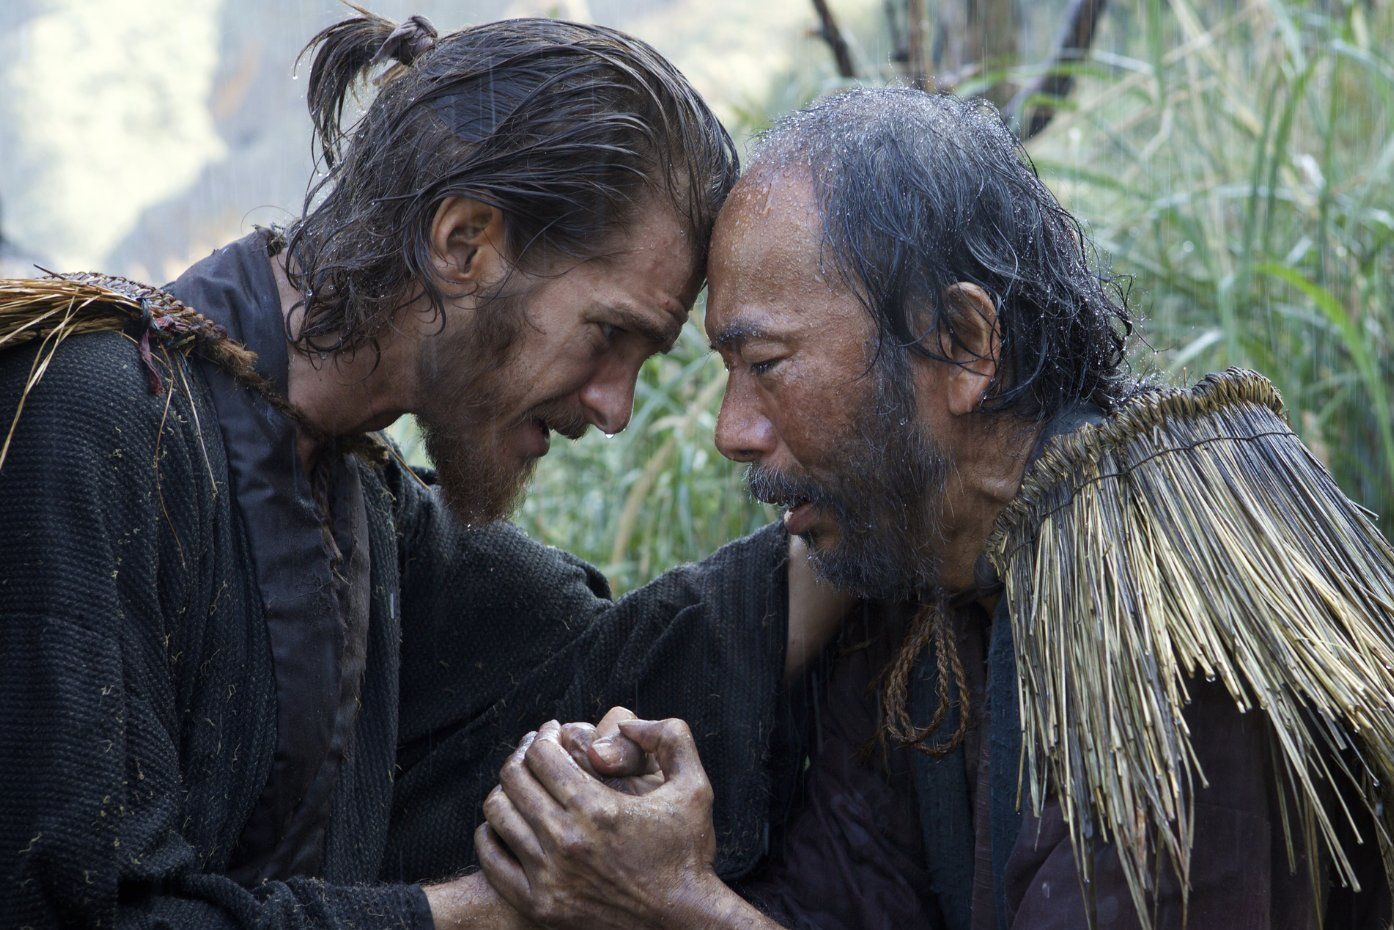 'Silence' is a bold passion project brought down by self-indulgence